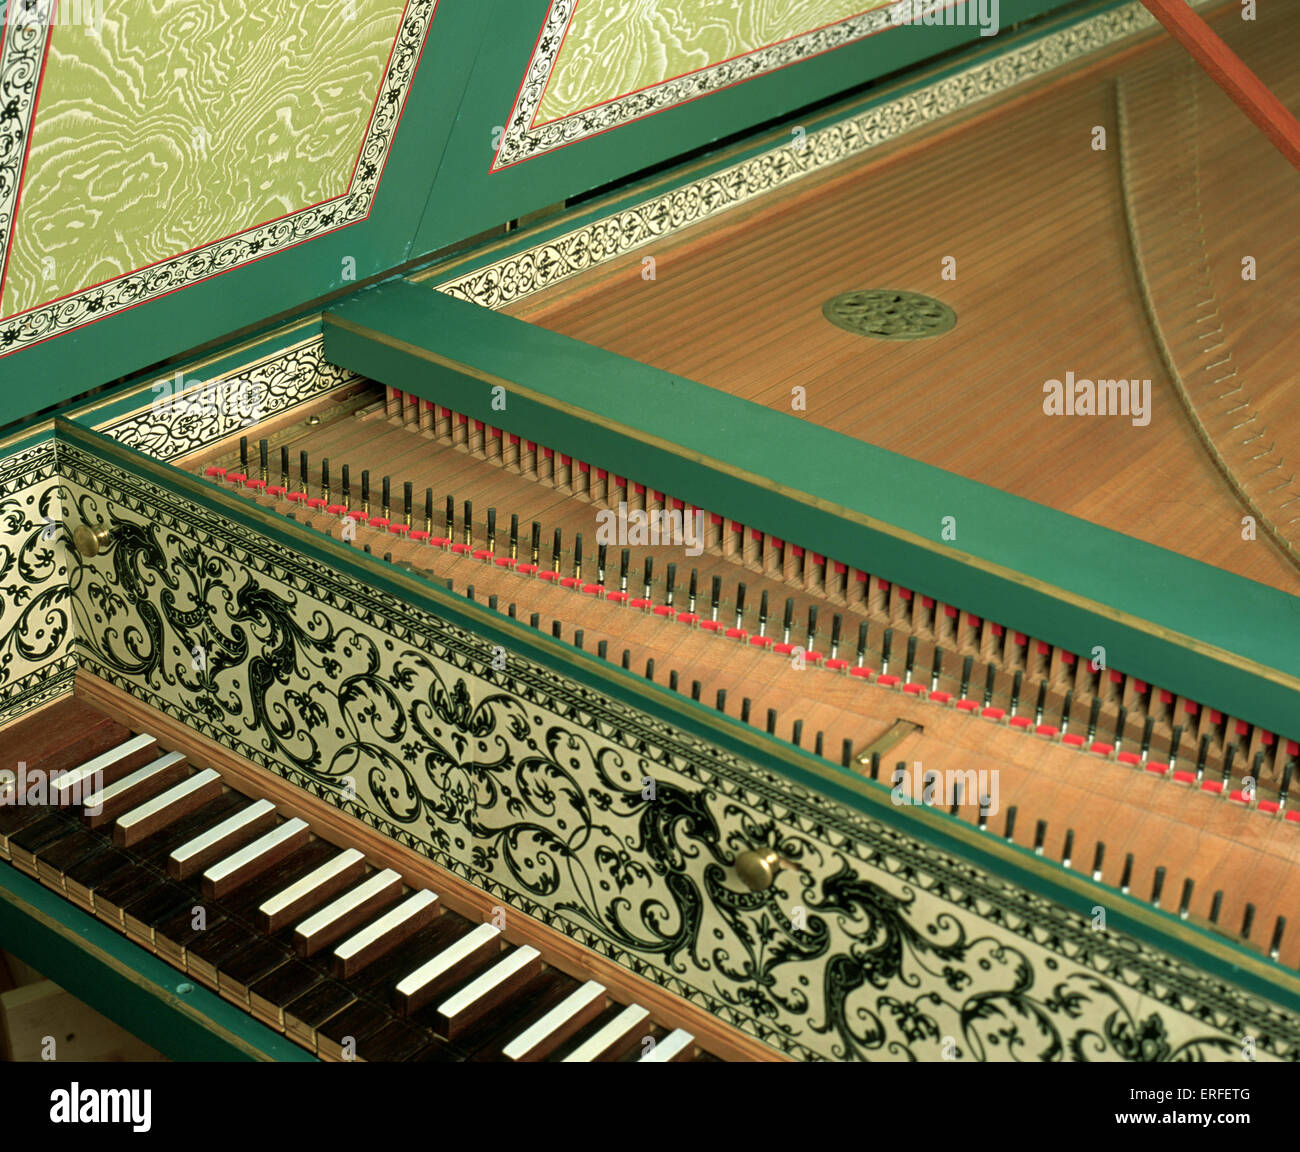 Harpsichord with open lid, showing strings, keyboard, sound